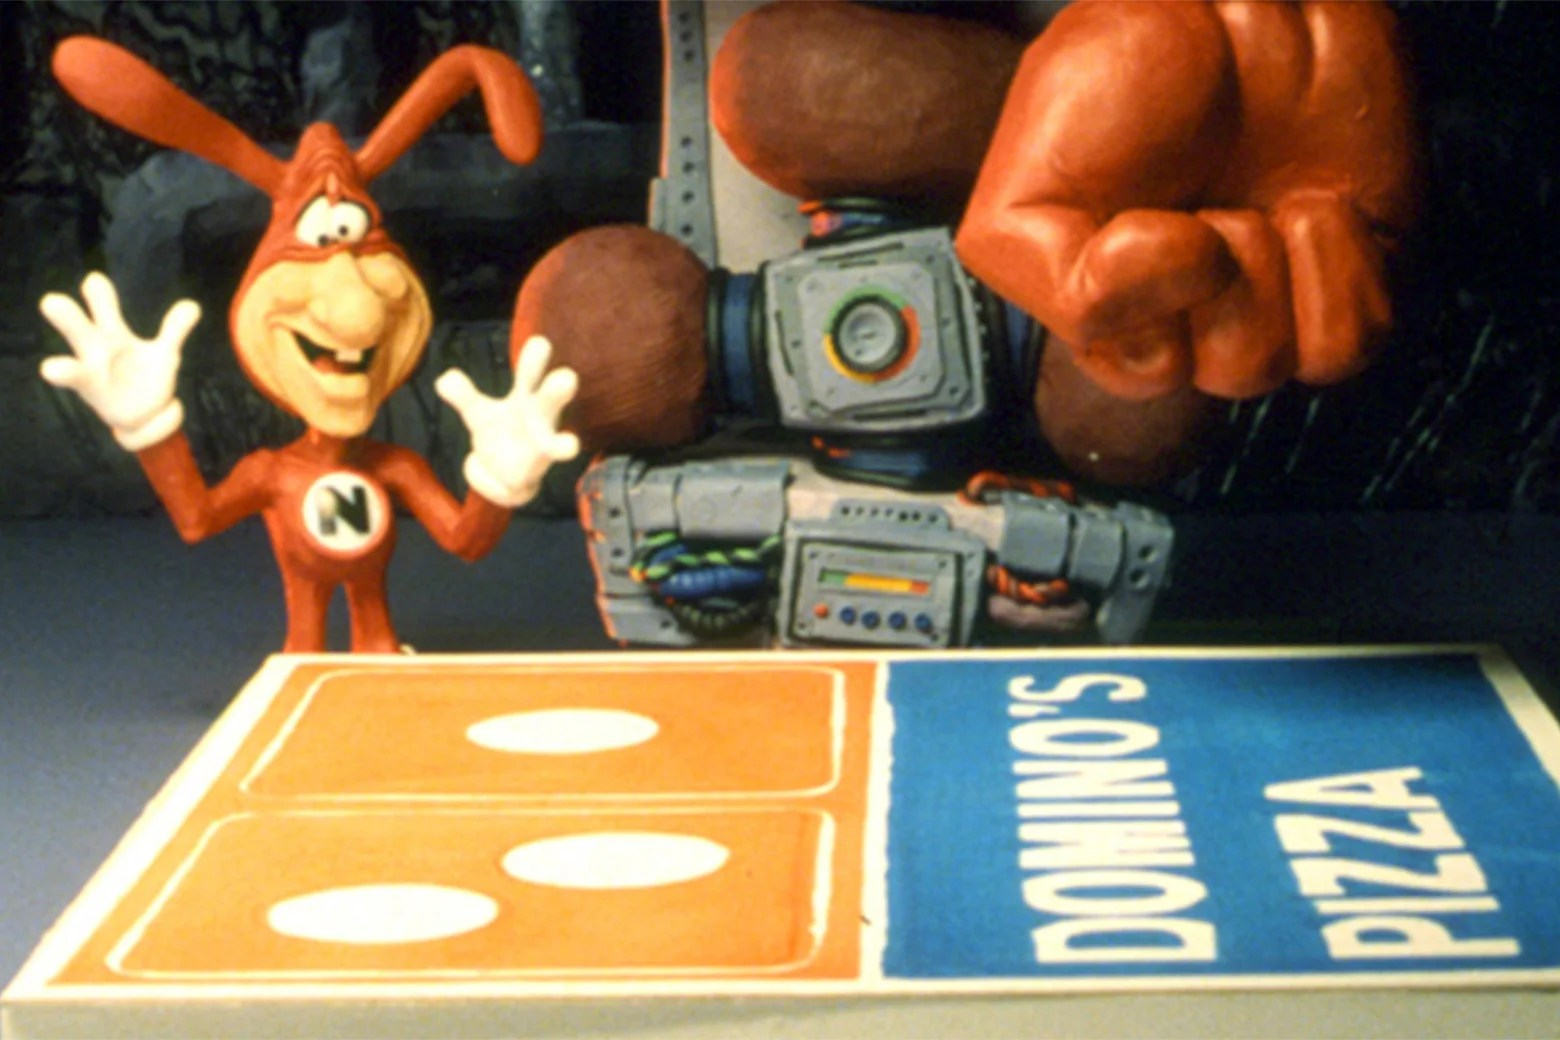 Studio 360s oral history of the Noid Dominos Pizzas infamous 80s mascot